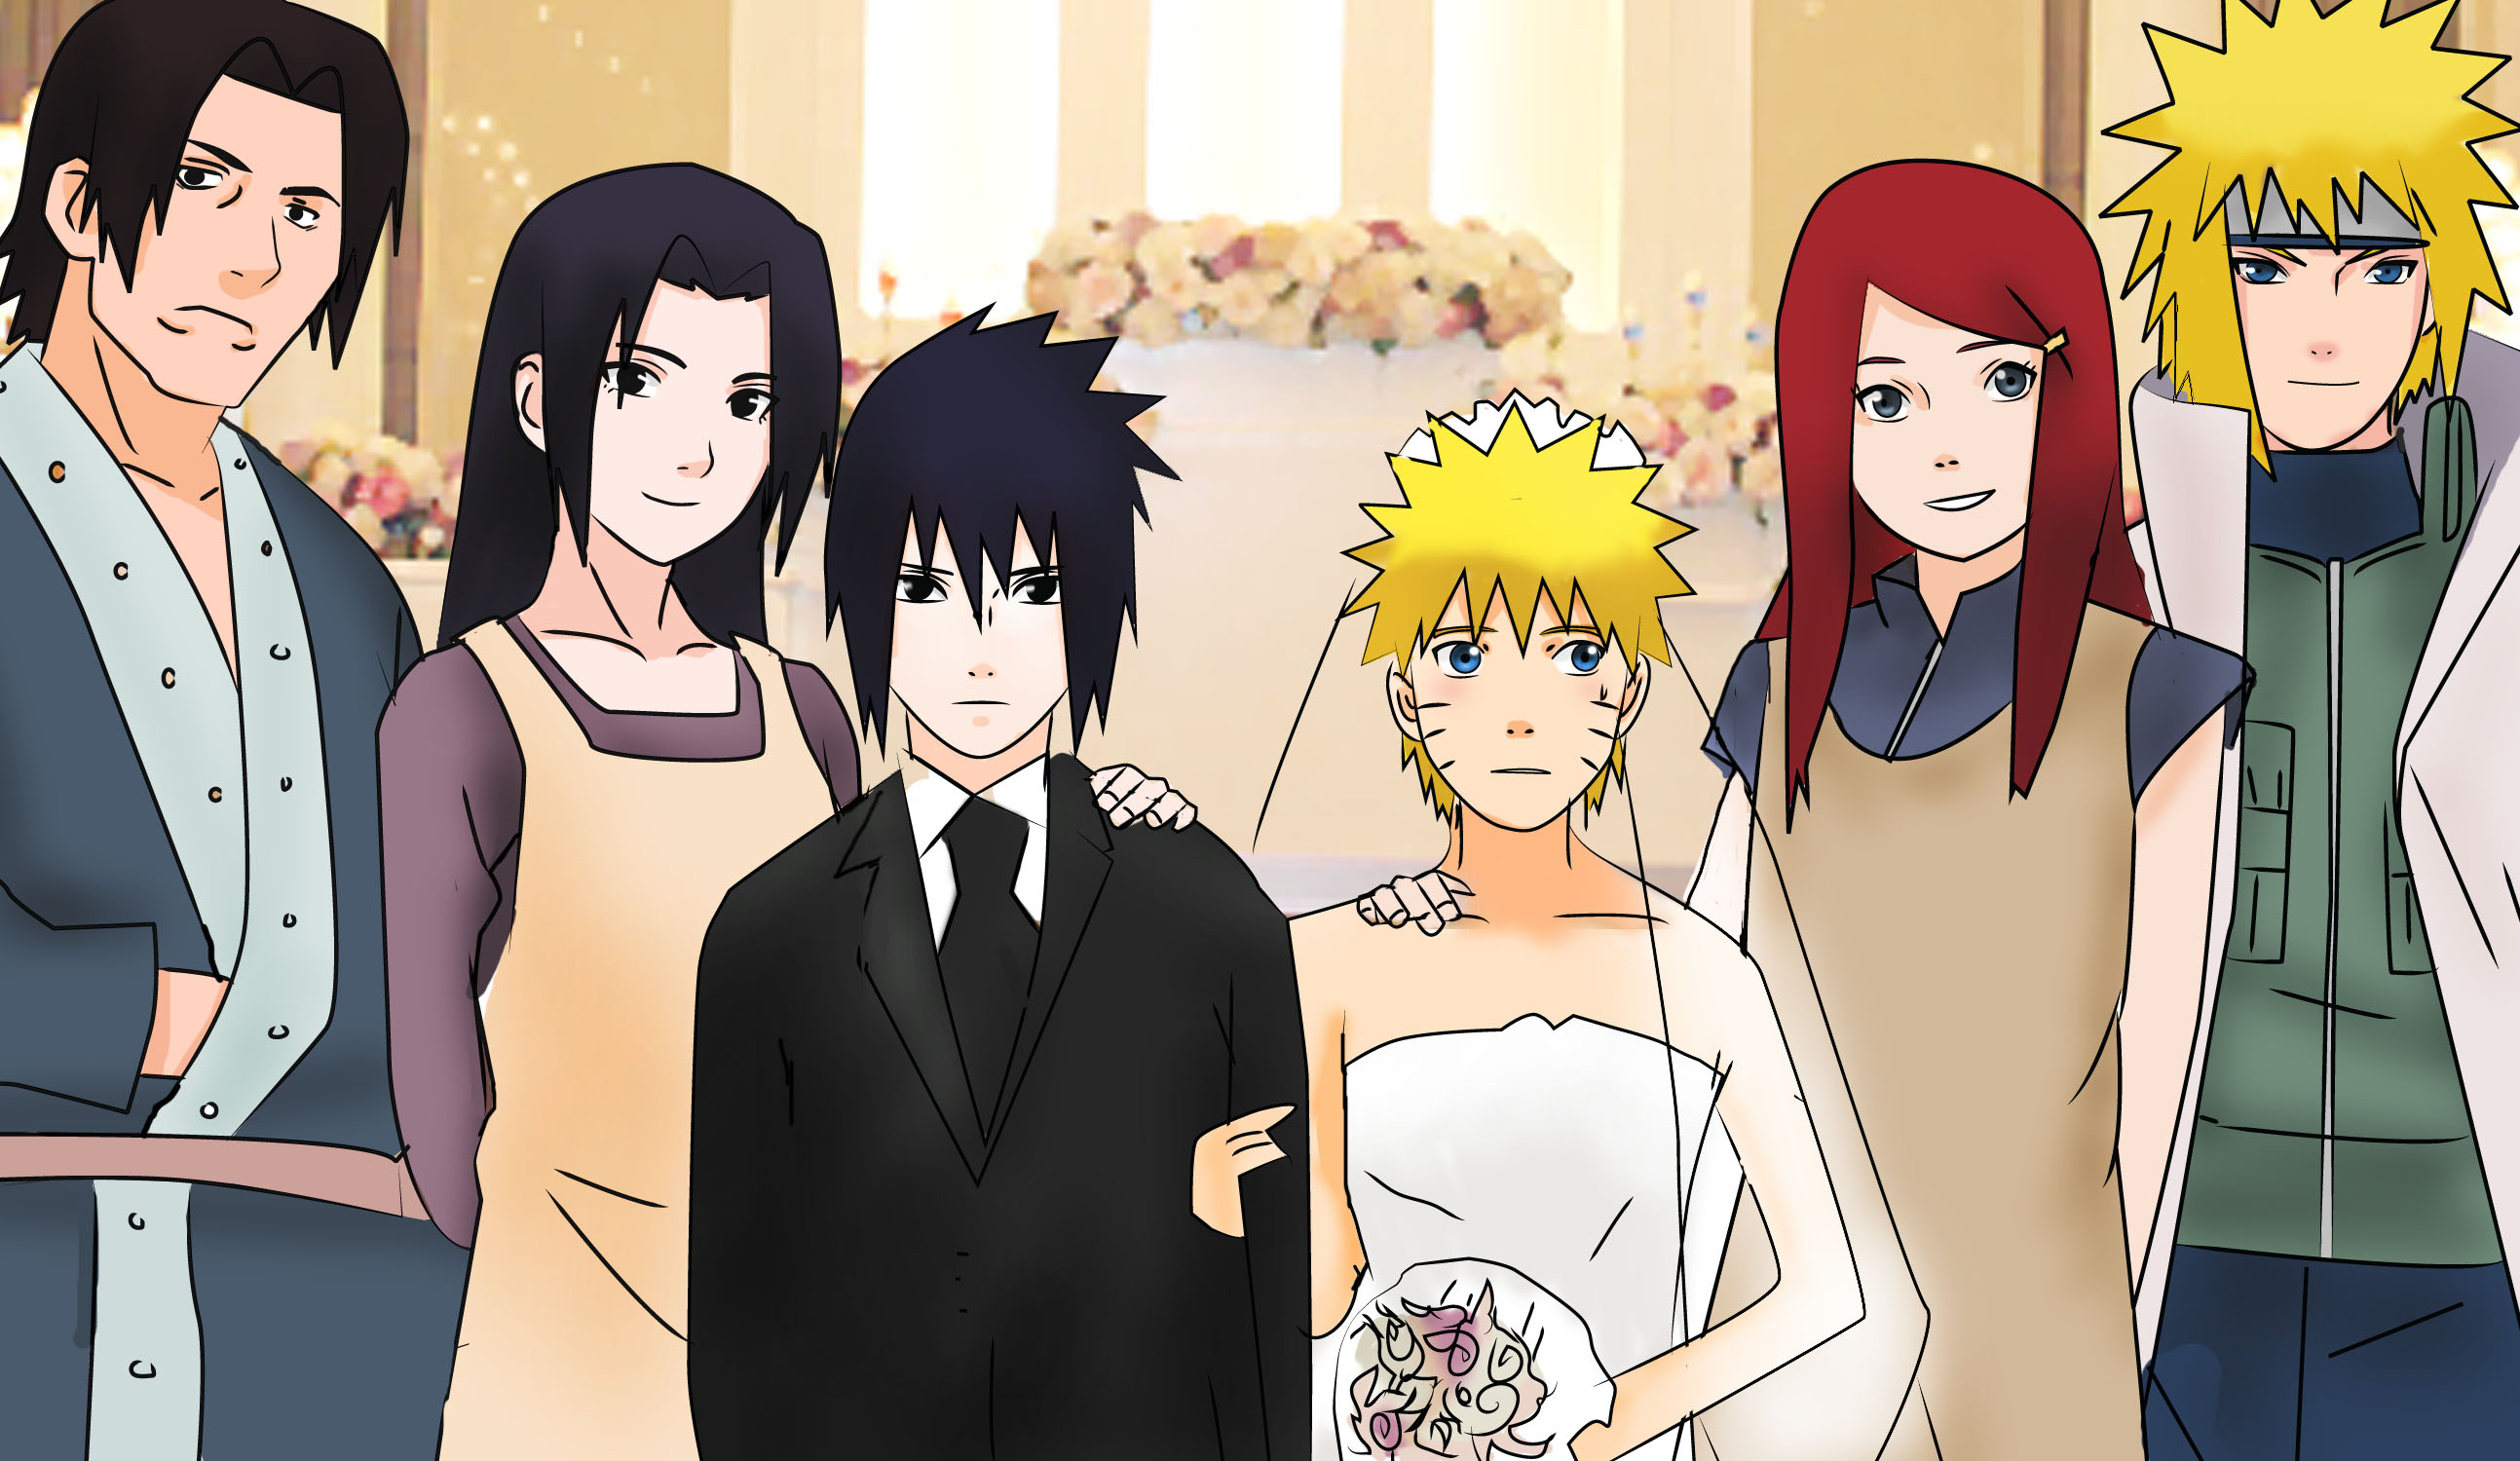 naruto and friends wallpaper